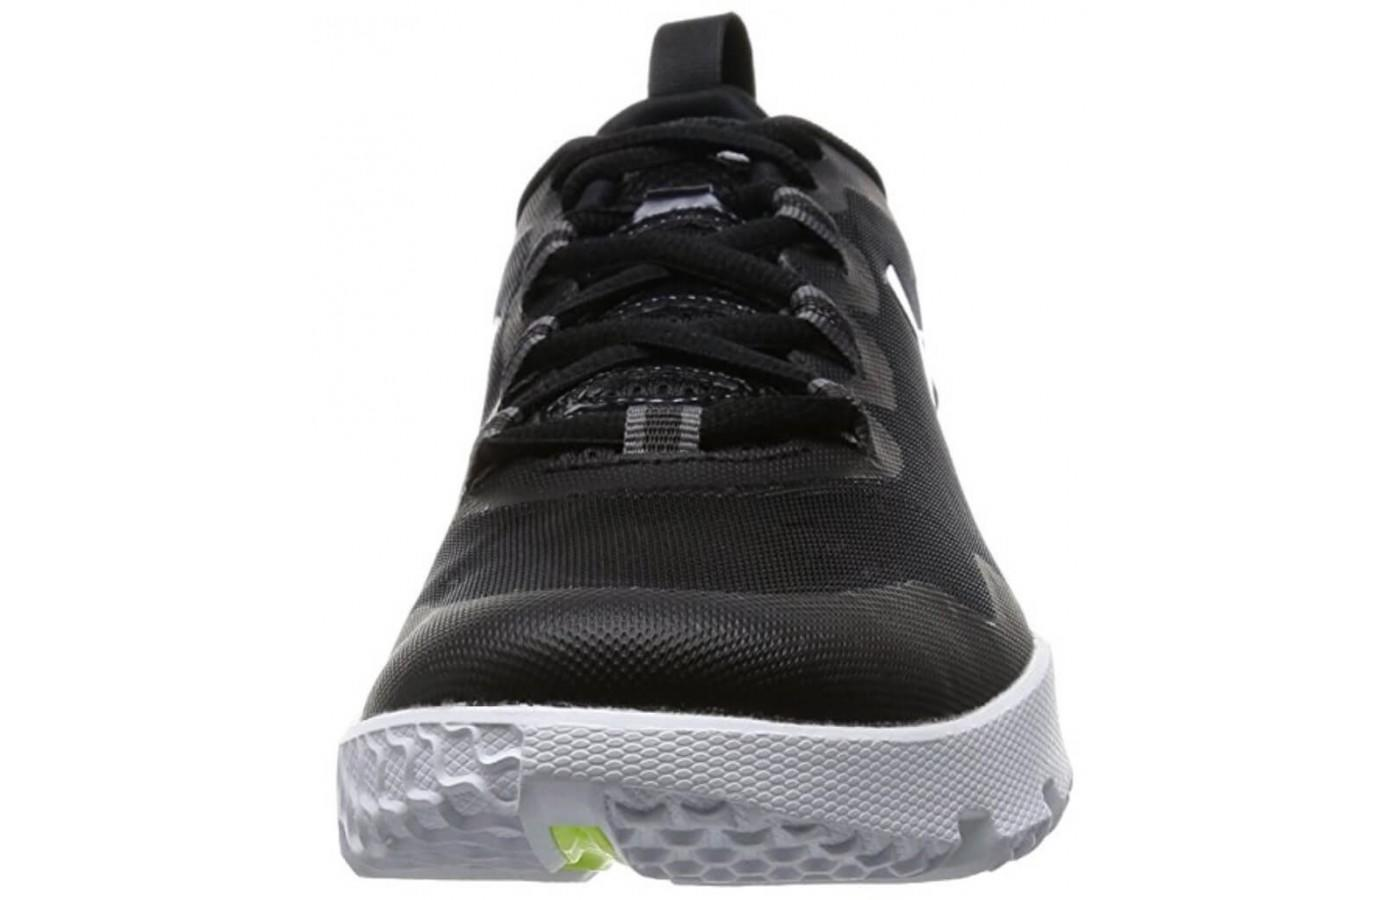 Under Armour Charged Ultimate front